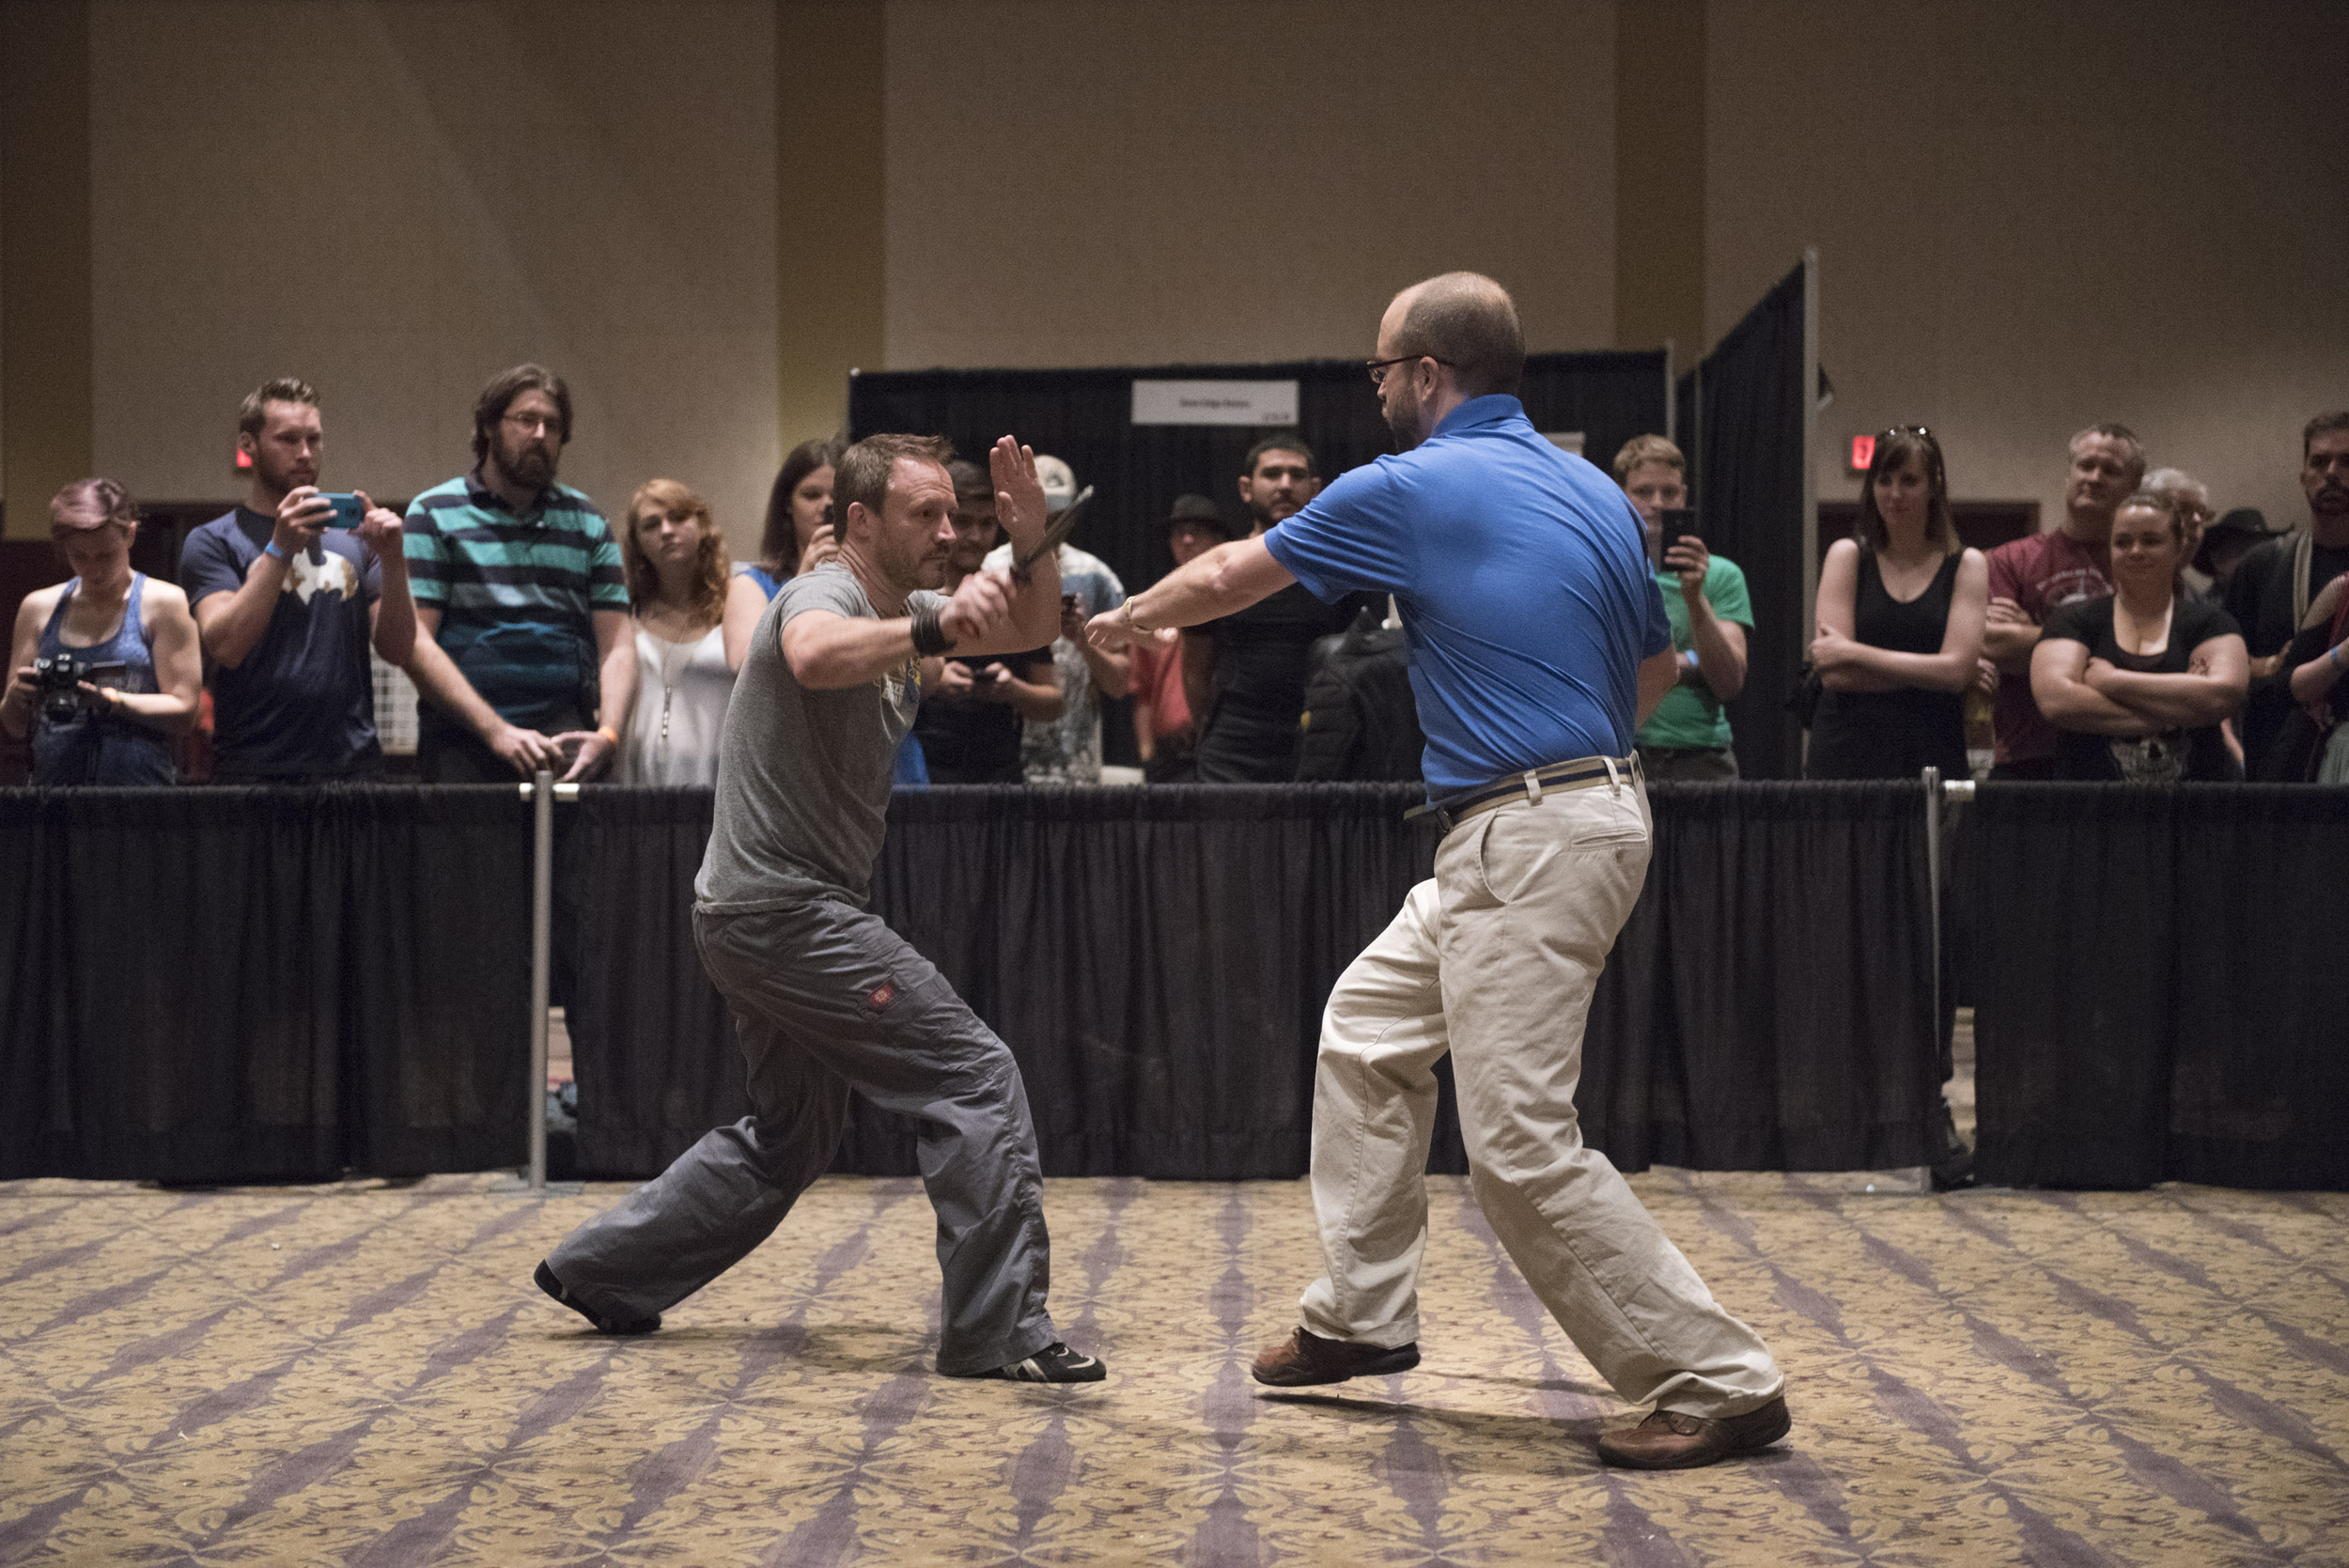 Steve Huff, left, and Jared Kirby demo a Shocknife at CombatCon at The Palms Resort and Casino in Las Vegas, Saturday, June 27, 2015.(Jason Ogulnik/Las Vegas Review-Journal)